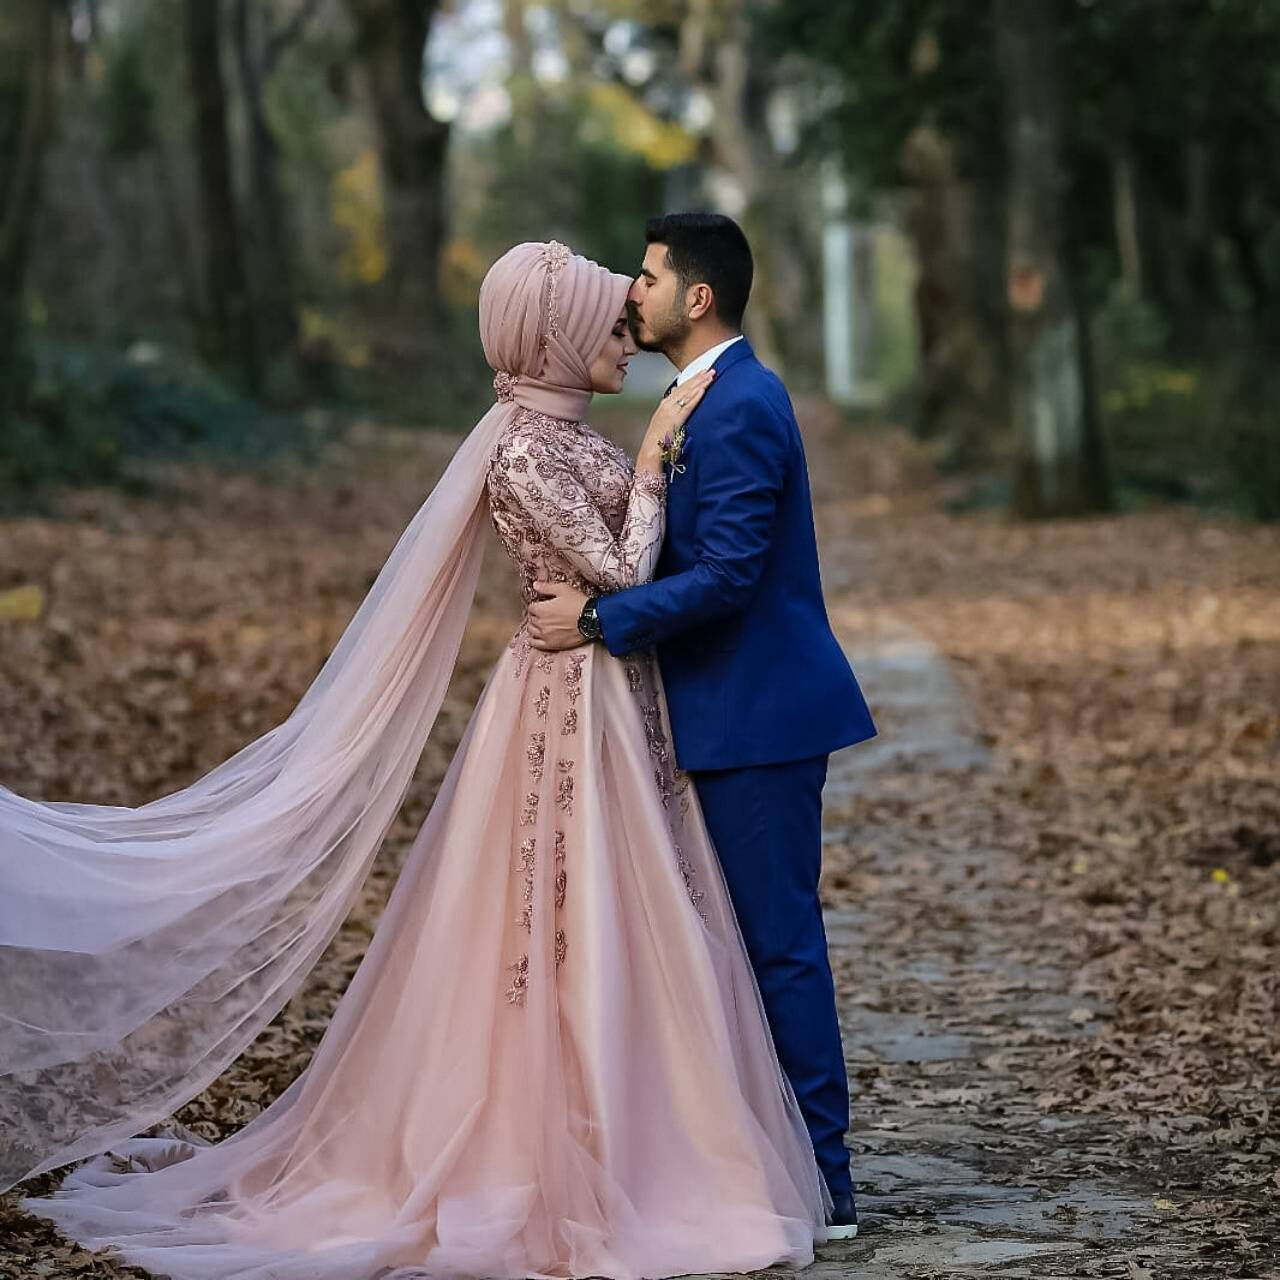 Muslim Couples Hd Wallpapers Wallpaper Cave